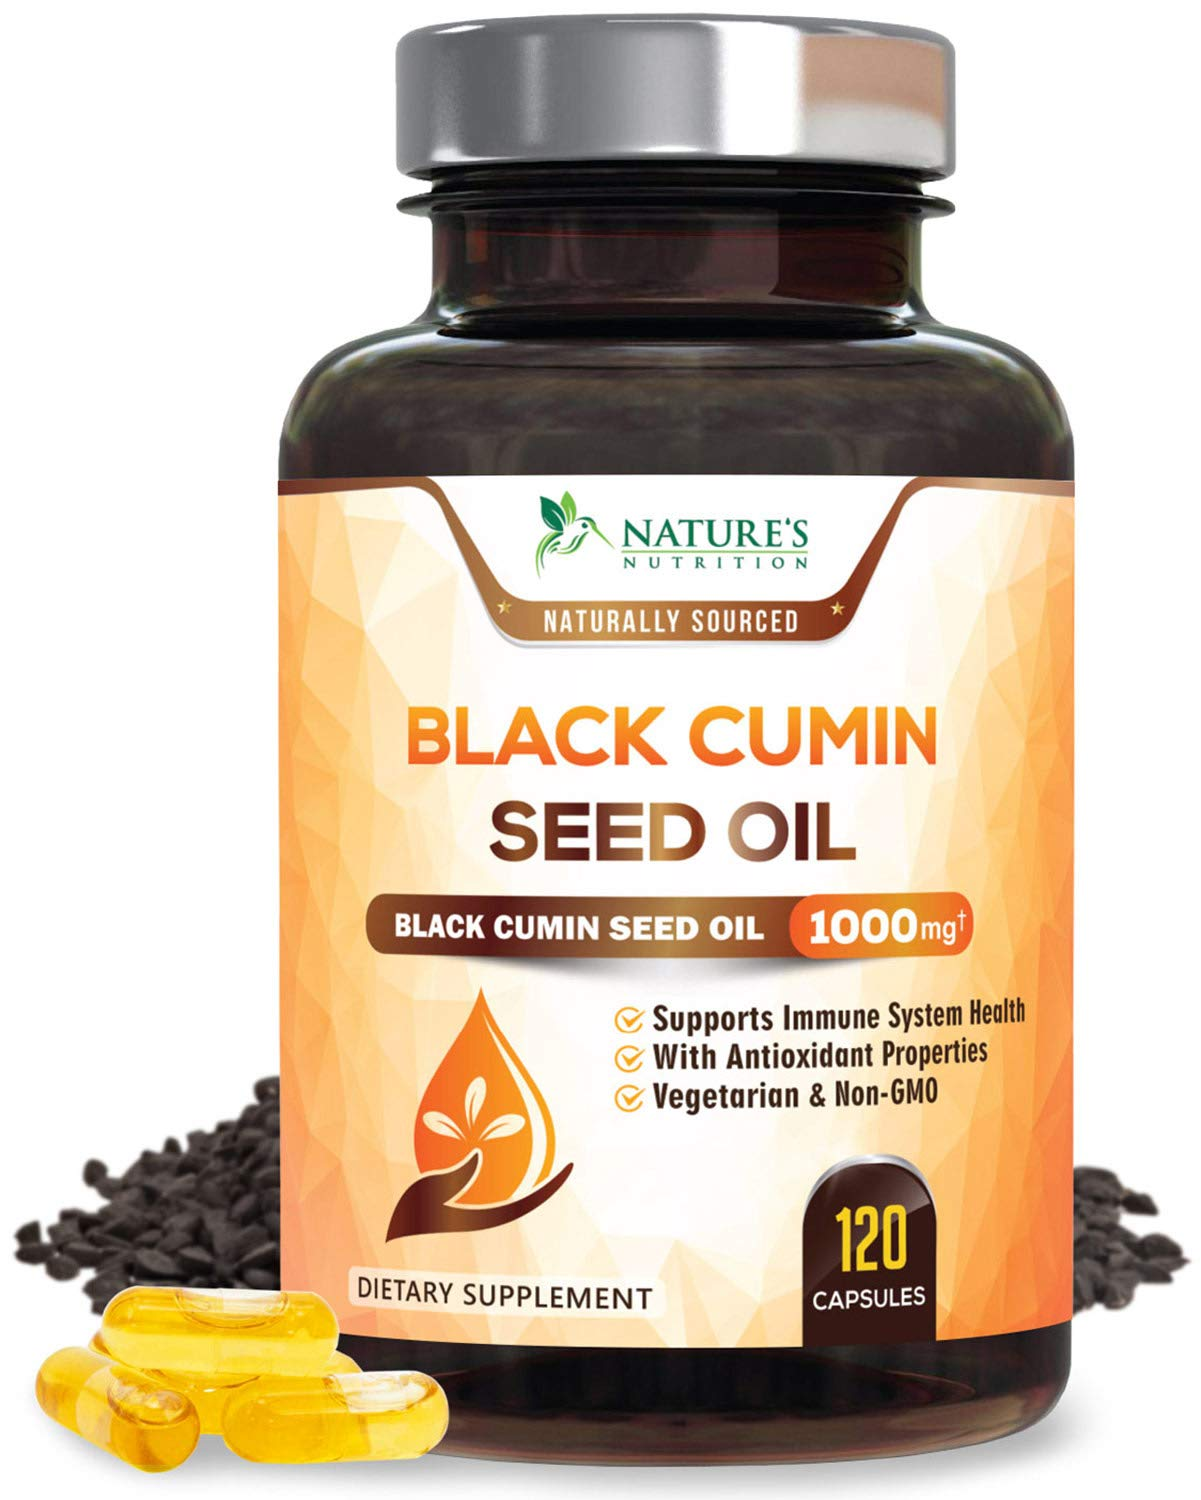 Black Seed Oil Capsules, Max Potency Cold-Pressed 1000mg - Premium Nigella Sativa Black Cumin, Amazing Antioxidant Highest Thymoquinone, Non-GMO Supplement Pills by Natures Nutrition - 120 Capsules